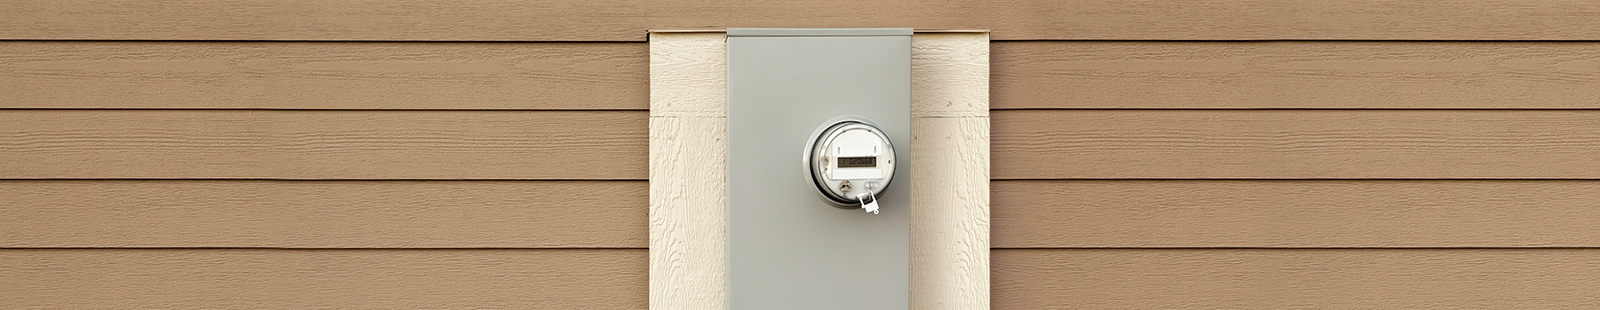 Smart Meter | For Your Home